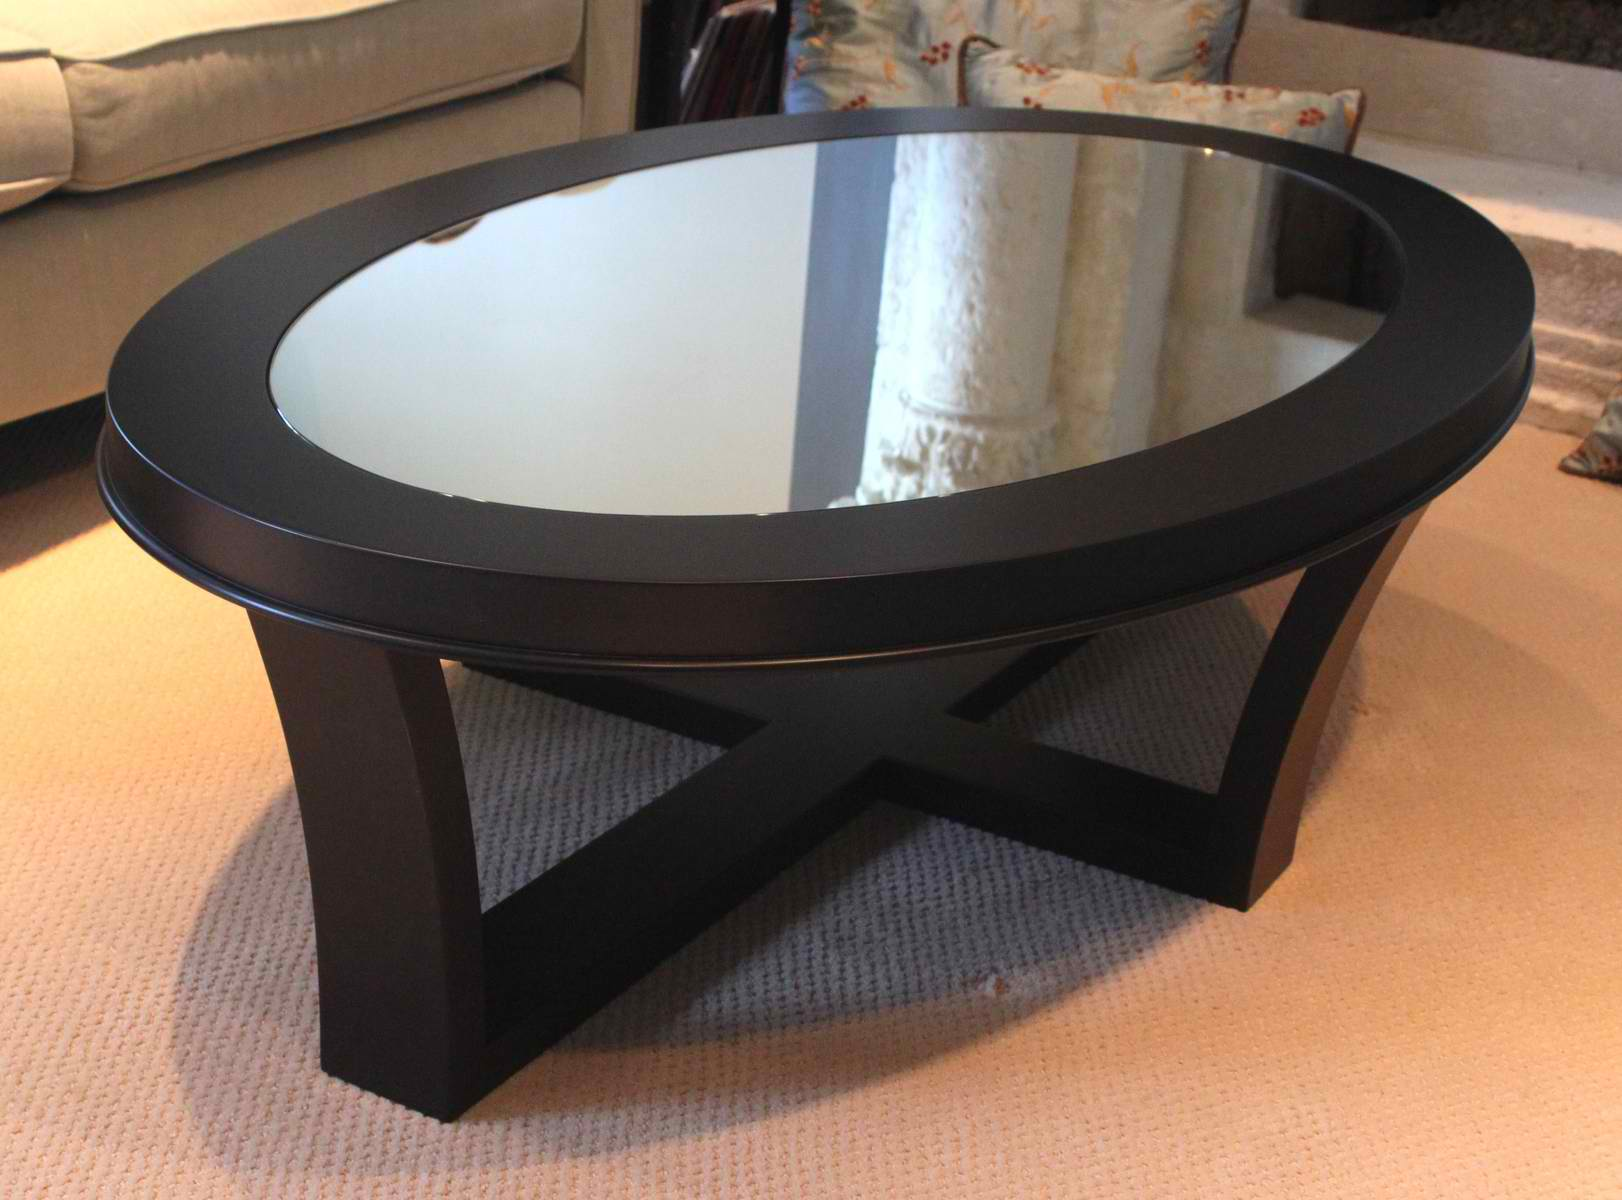 Glass Top Coffee Table With Storage Furniture Oval Glass Top Coffee Table With Storage And Wooden Base Frame Painted Black Color On Cream Carpet (Image 6 of 10)